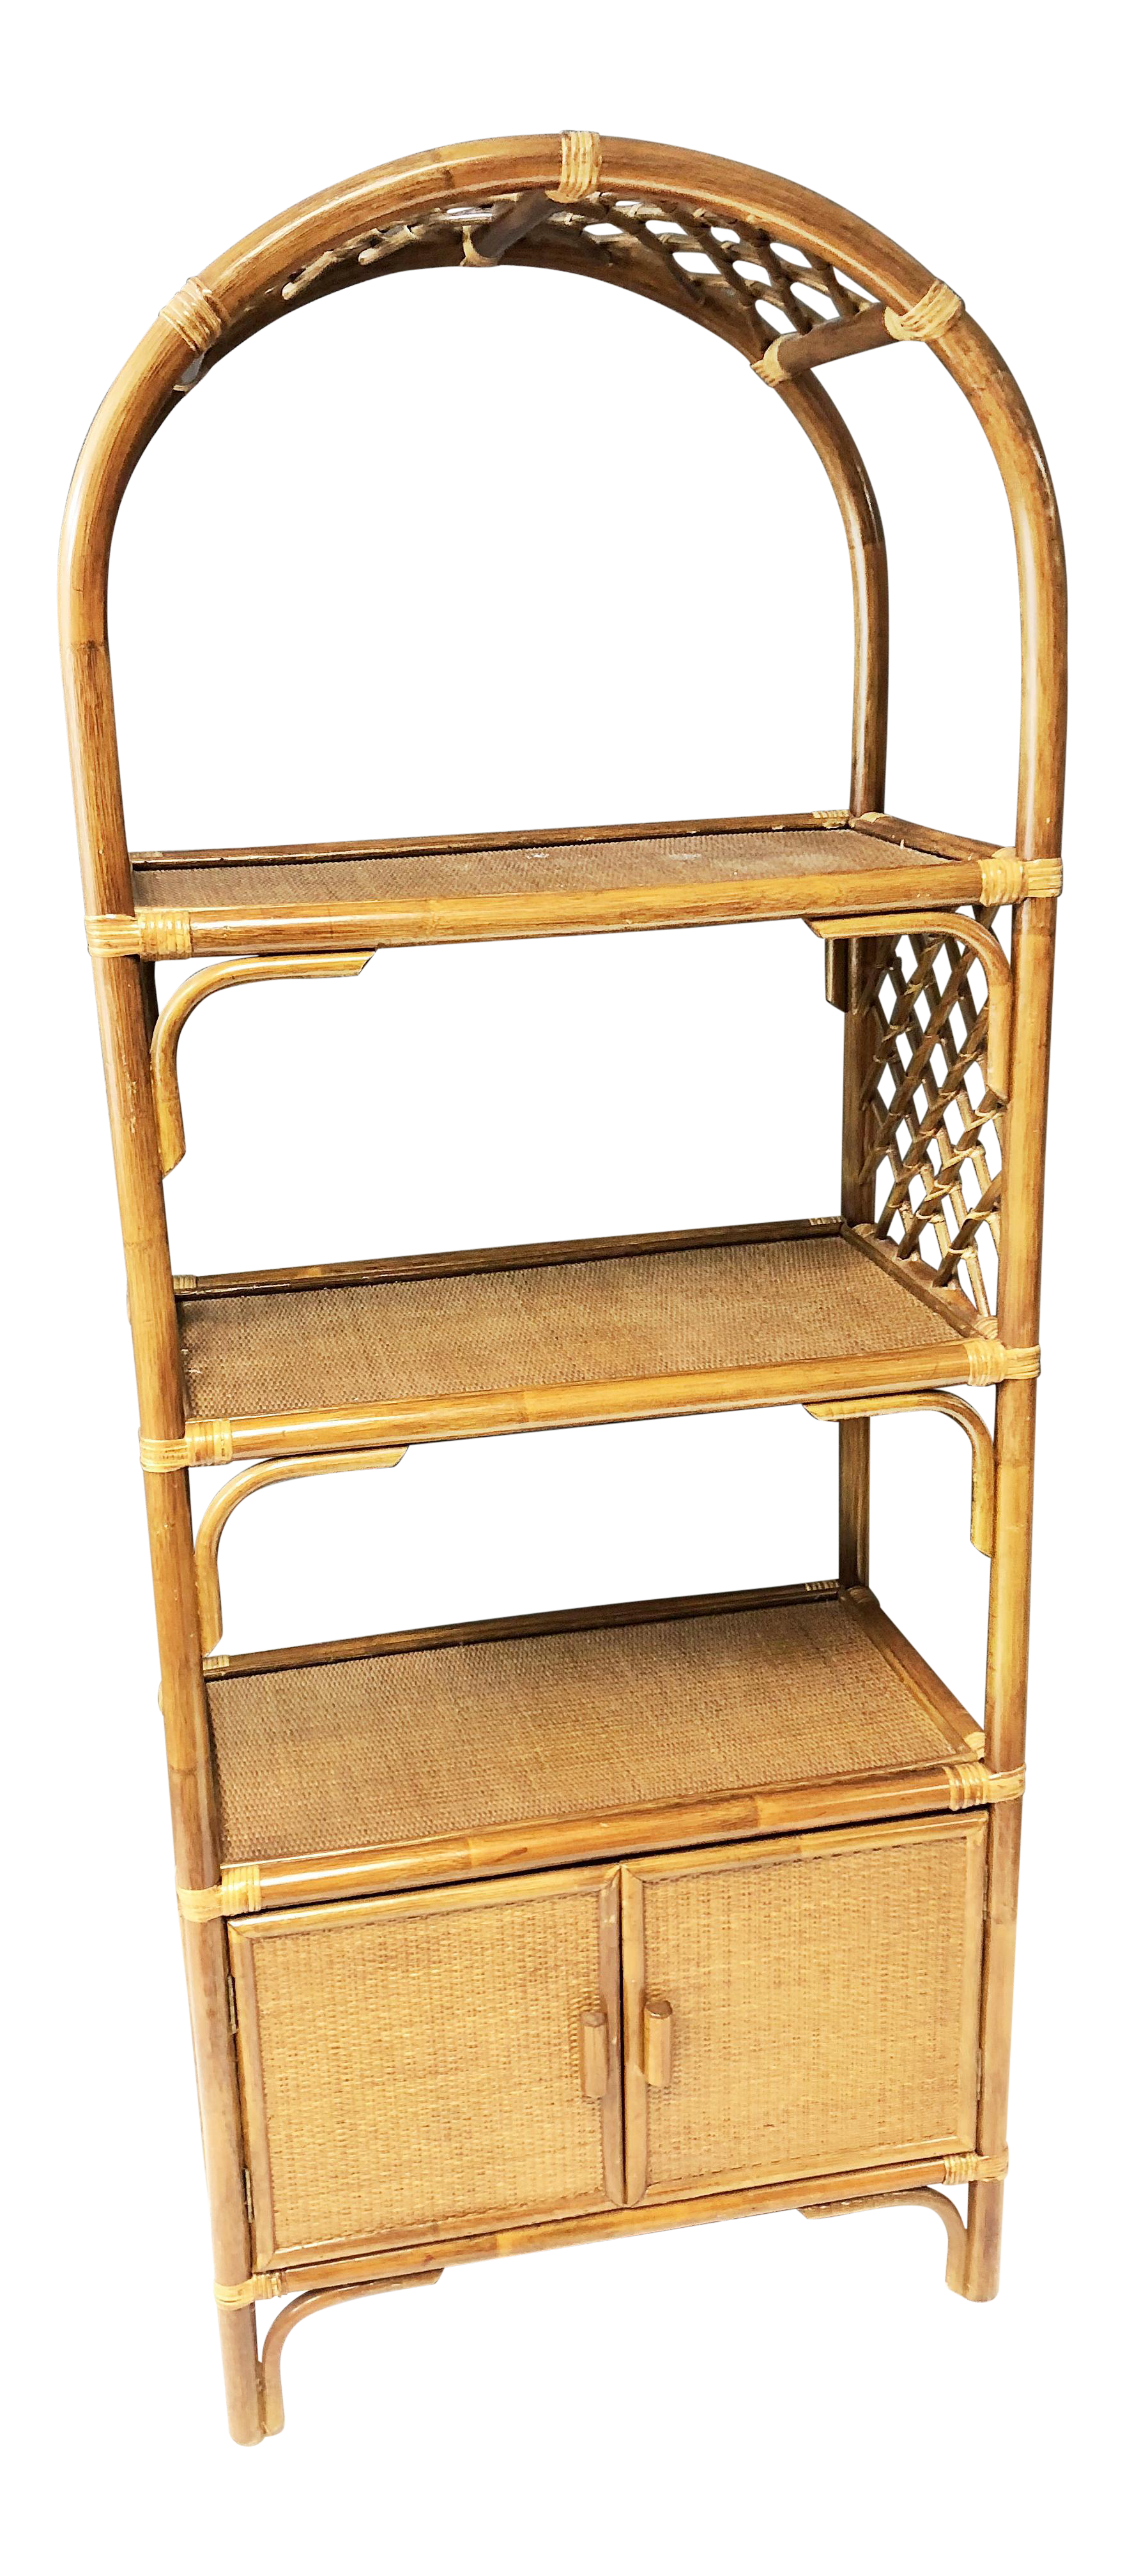 trends bamboo unit design attachment shelving rhrwswjcom furniture rattan j shelves photos freestanding home wicker chairishrhchairishcom outstanding bookcases bookcase